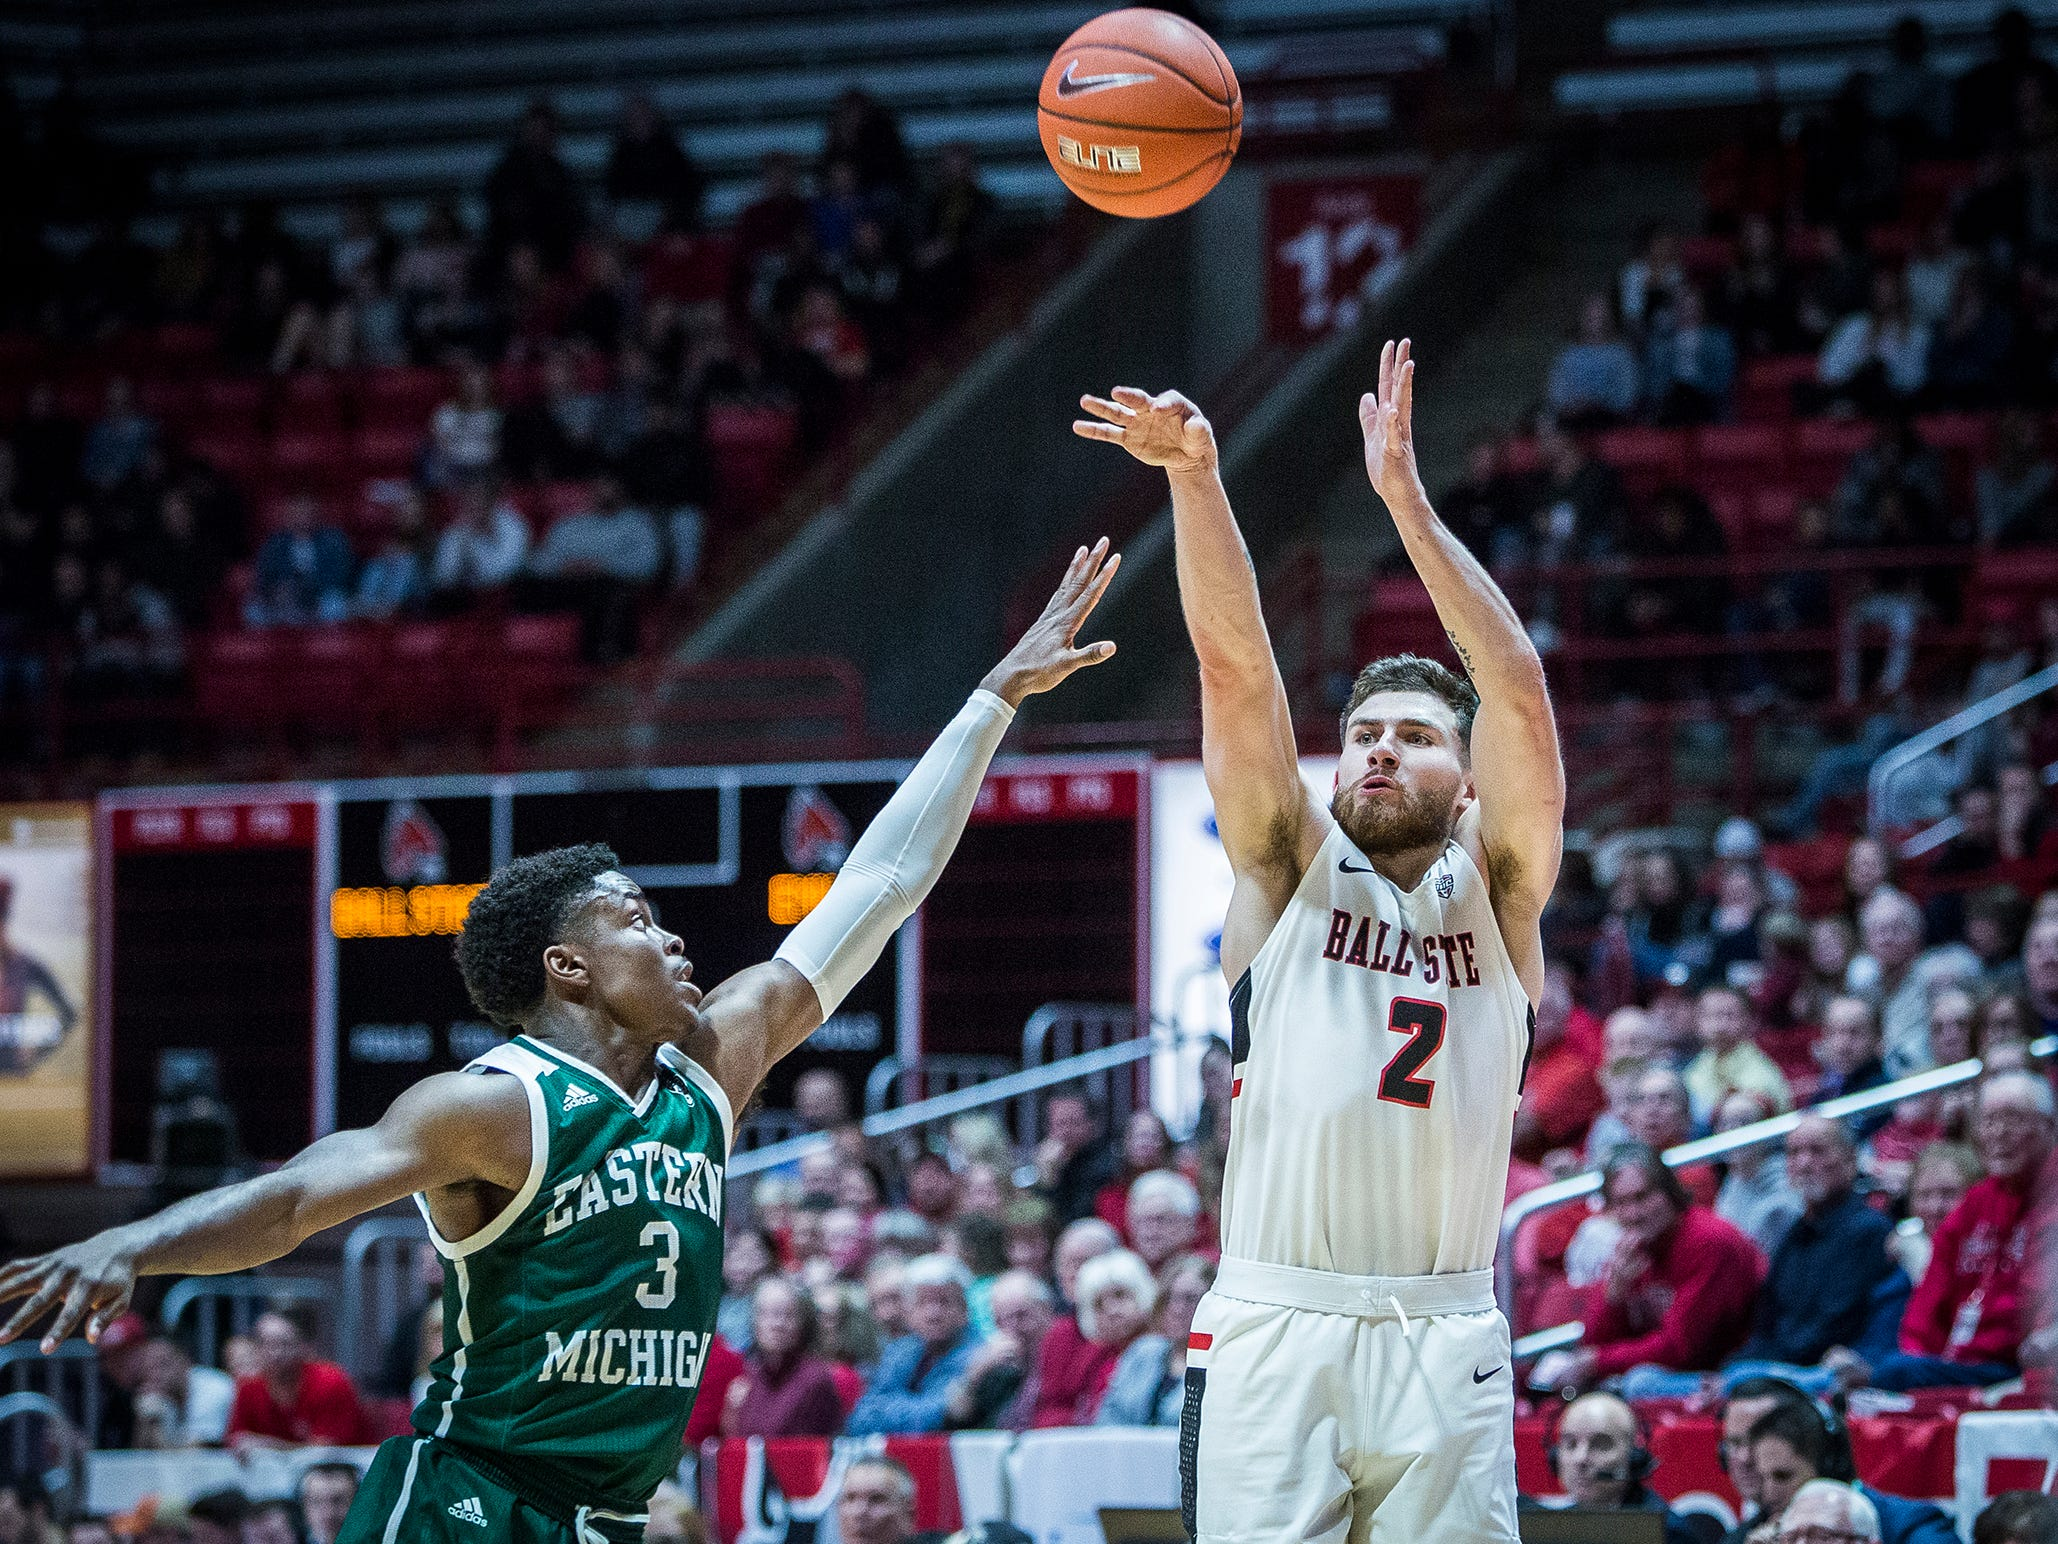 Ball State's Tayler Persons shoots past Eastern Michigan's defense during their game at Worthen Arena Tuesday, Jan. 8, 2019.